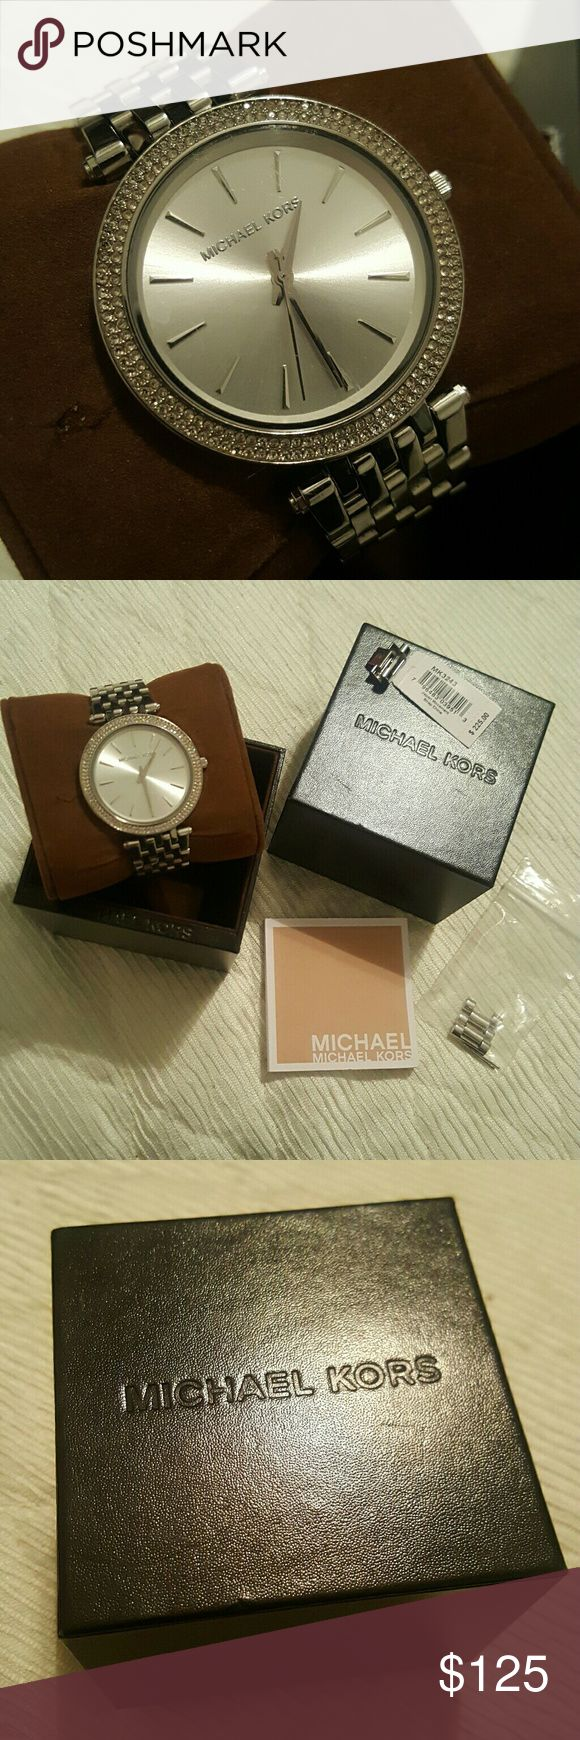 Michael Kors Silver Watch In excellent condition. With its original box and links to adjust to your size.  Price is negotiable, not fixed. Taking all offers  (: Michael Kors Accessories Watches